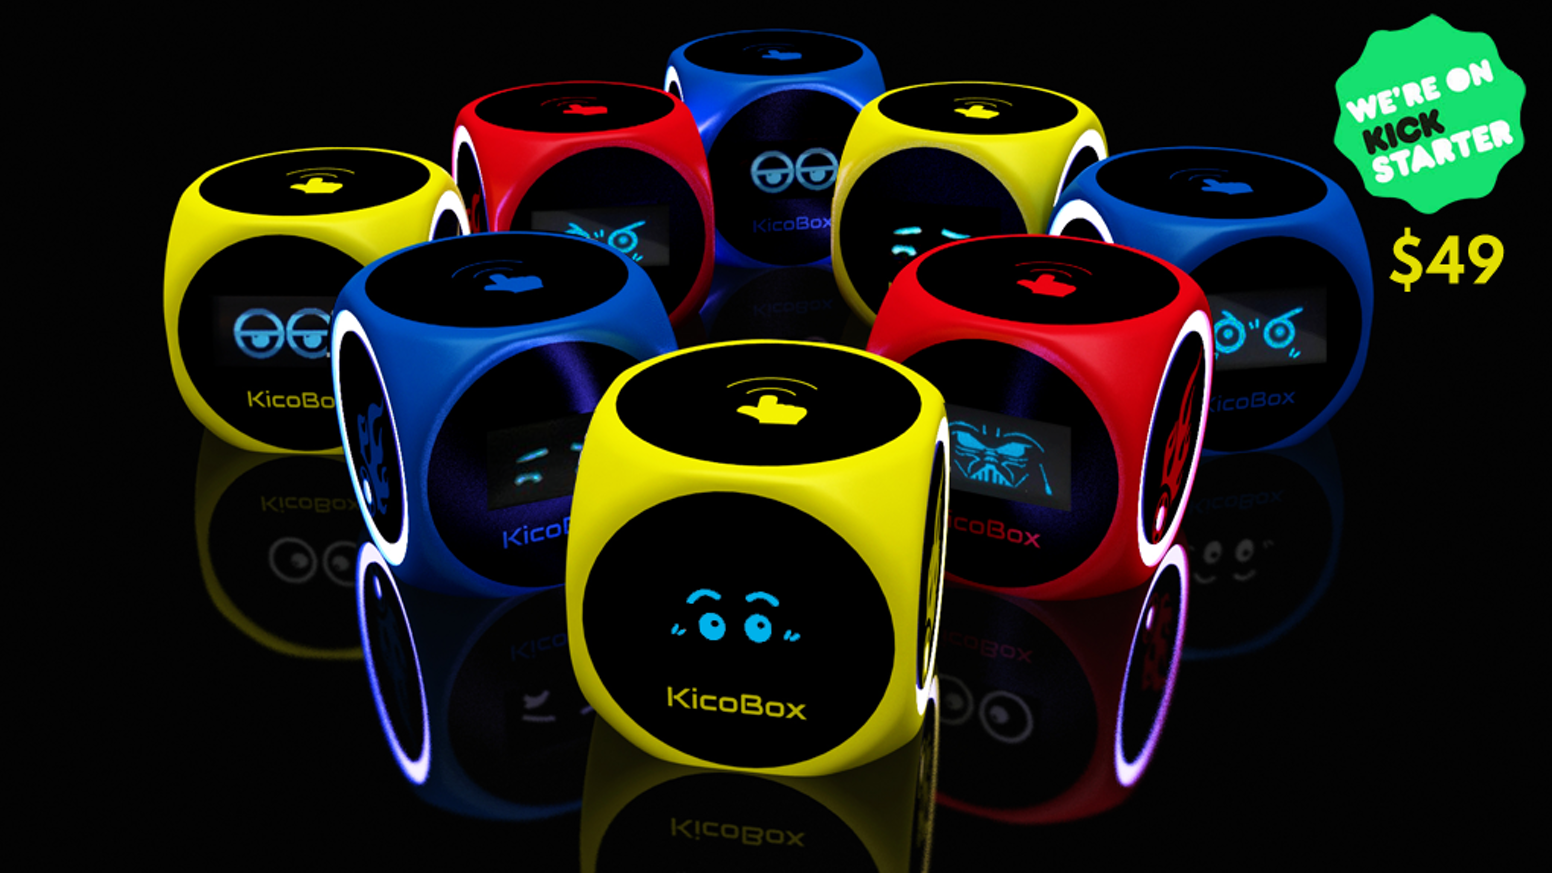 Let everyone fall in love with coding with KicoBox, the robot that turns anywhere into an interactive coding experience.